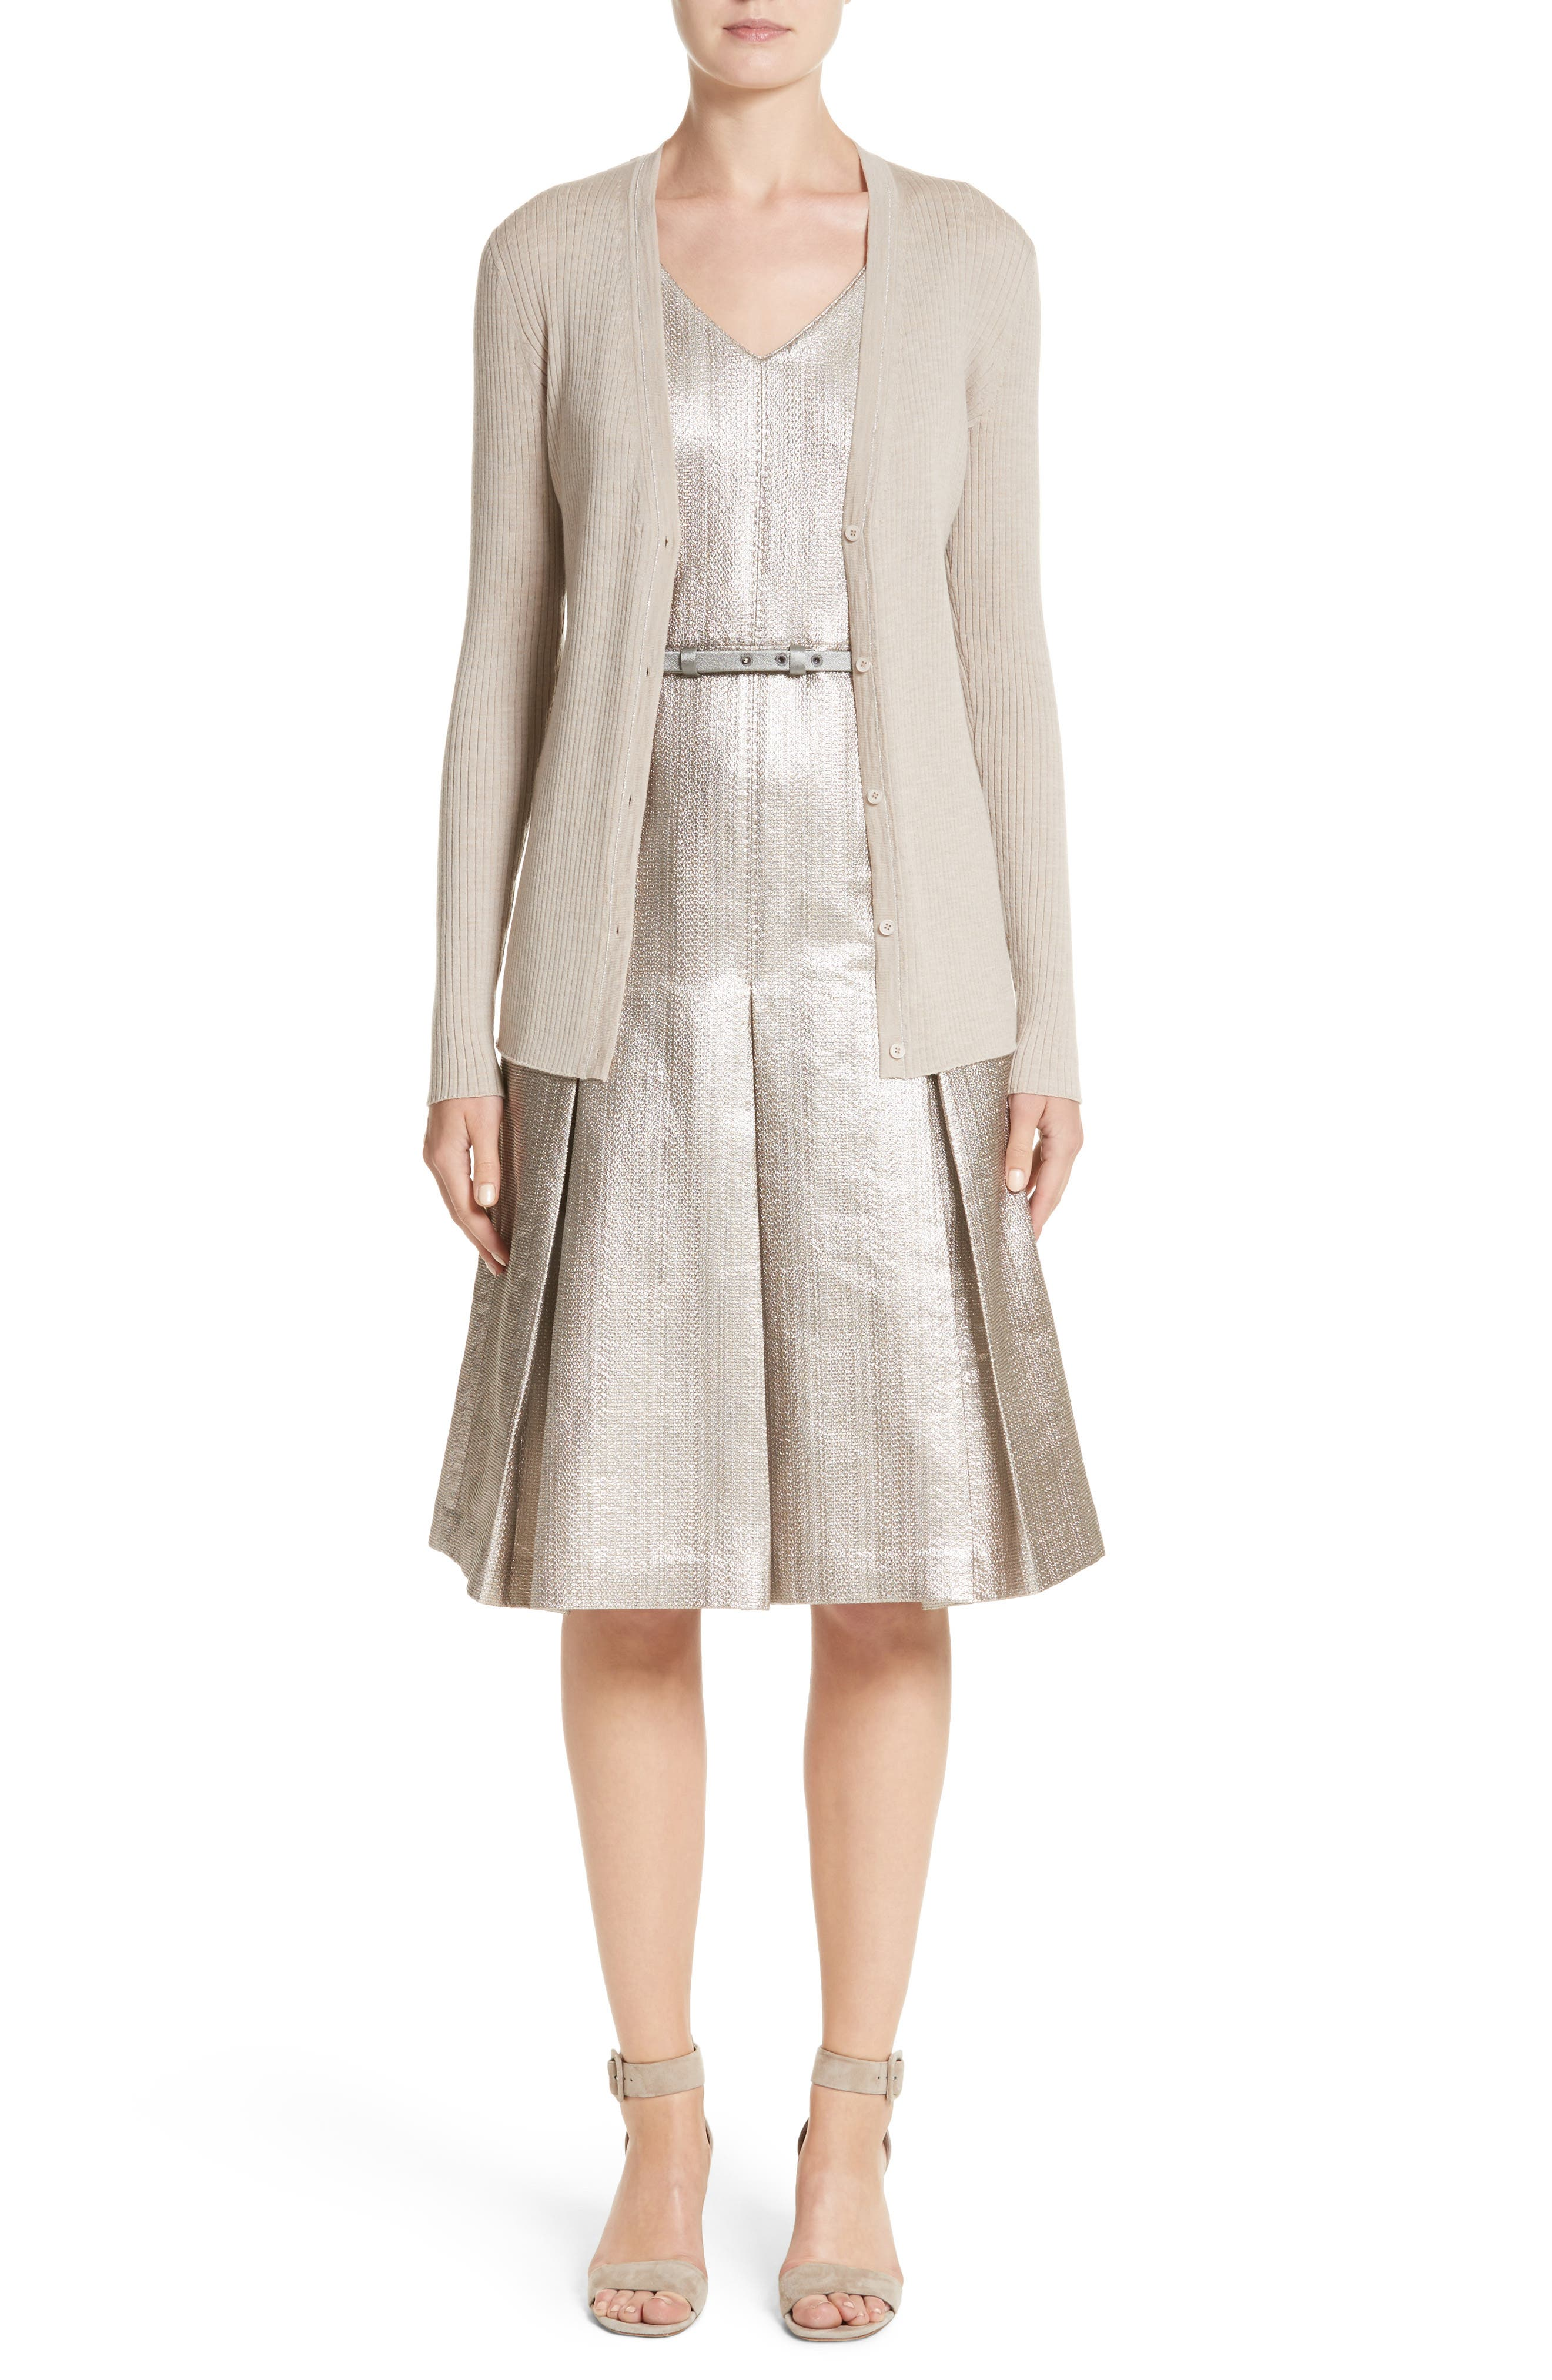 Lois Ceremonial Cloth Dress,                             Alternate thumbnail 7, color,                             Oyster Metallic